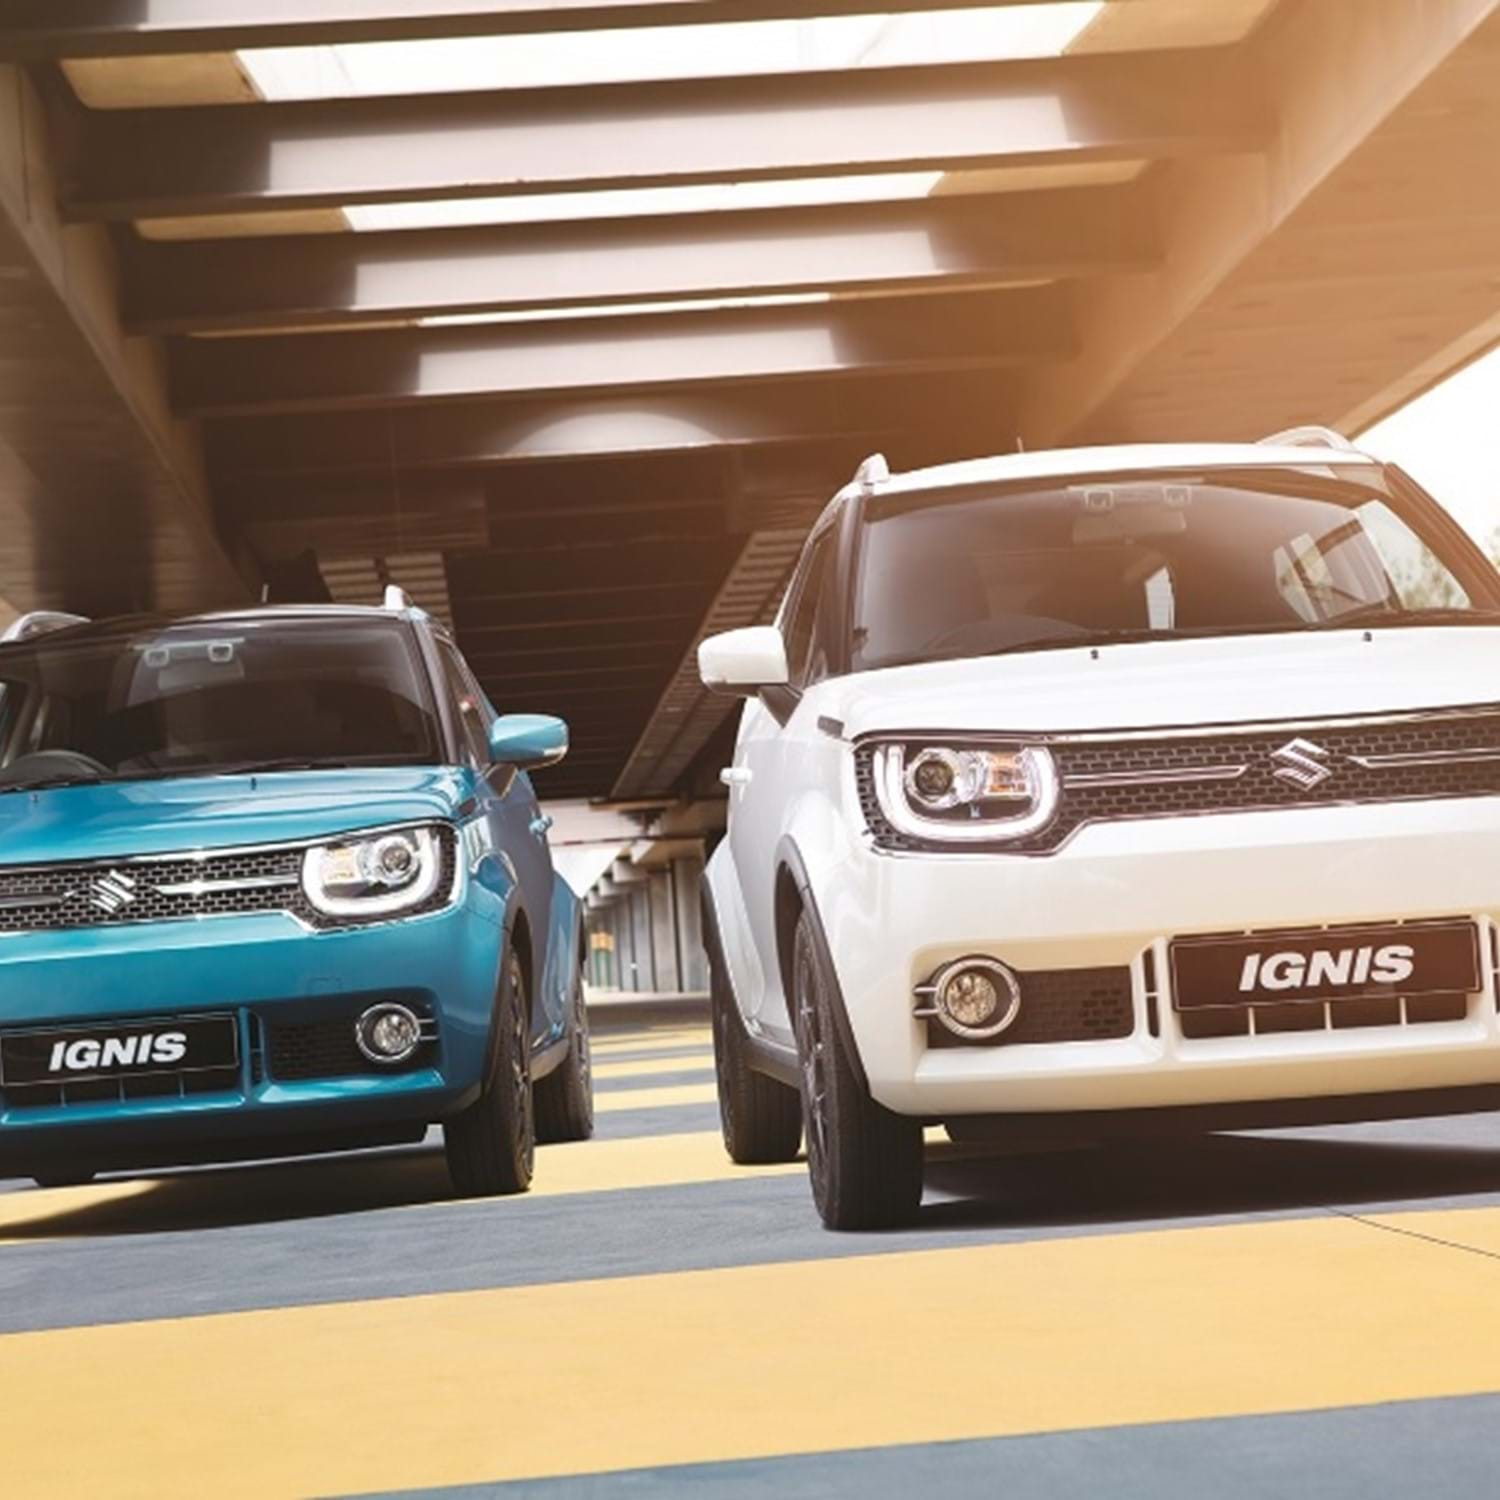 A turquoise and a white Ignis racing